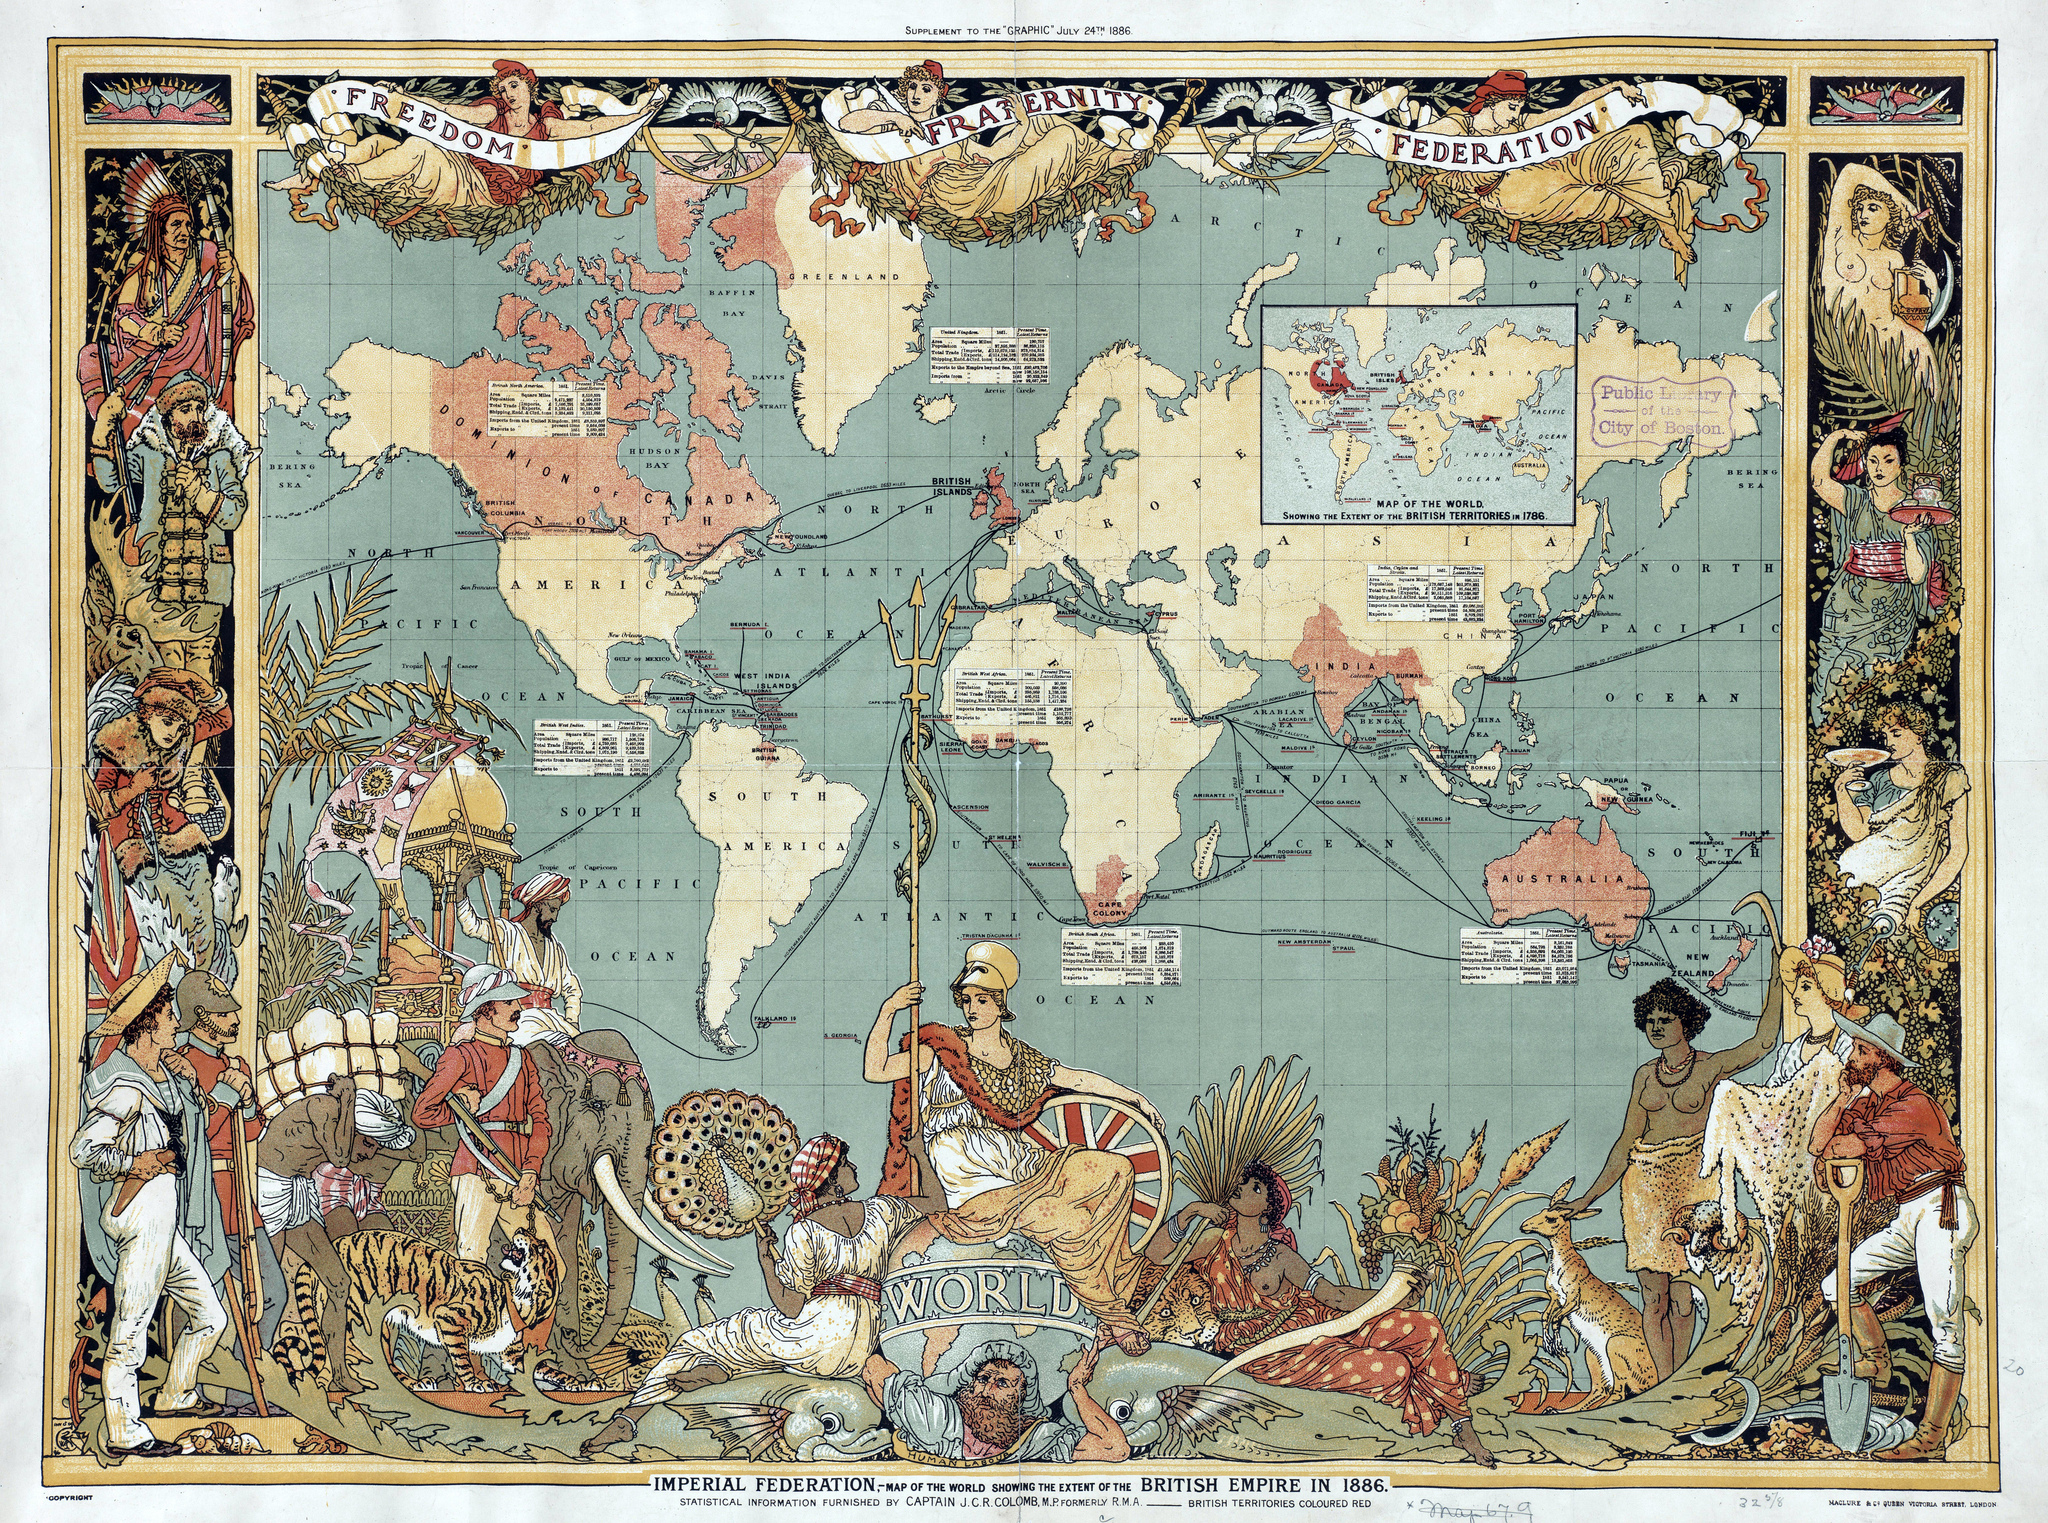 The British Empire in 1886, in the earlier days of its colonial expansion. ©Forgemind Active Media